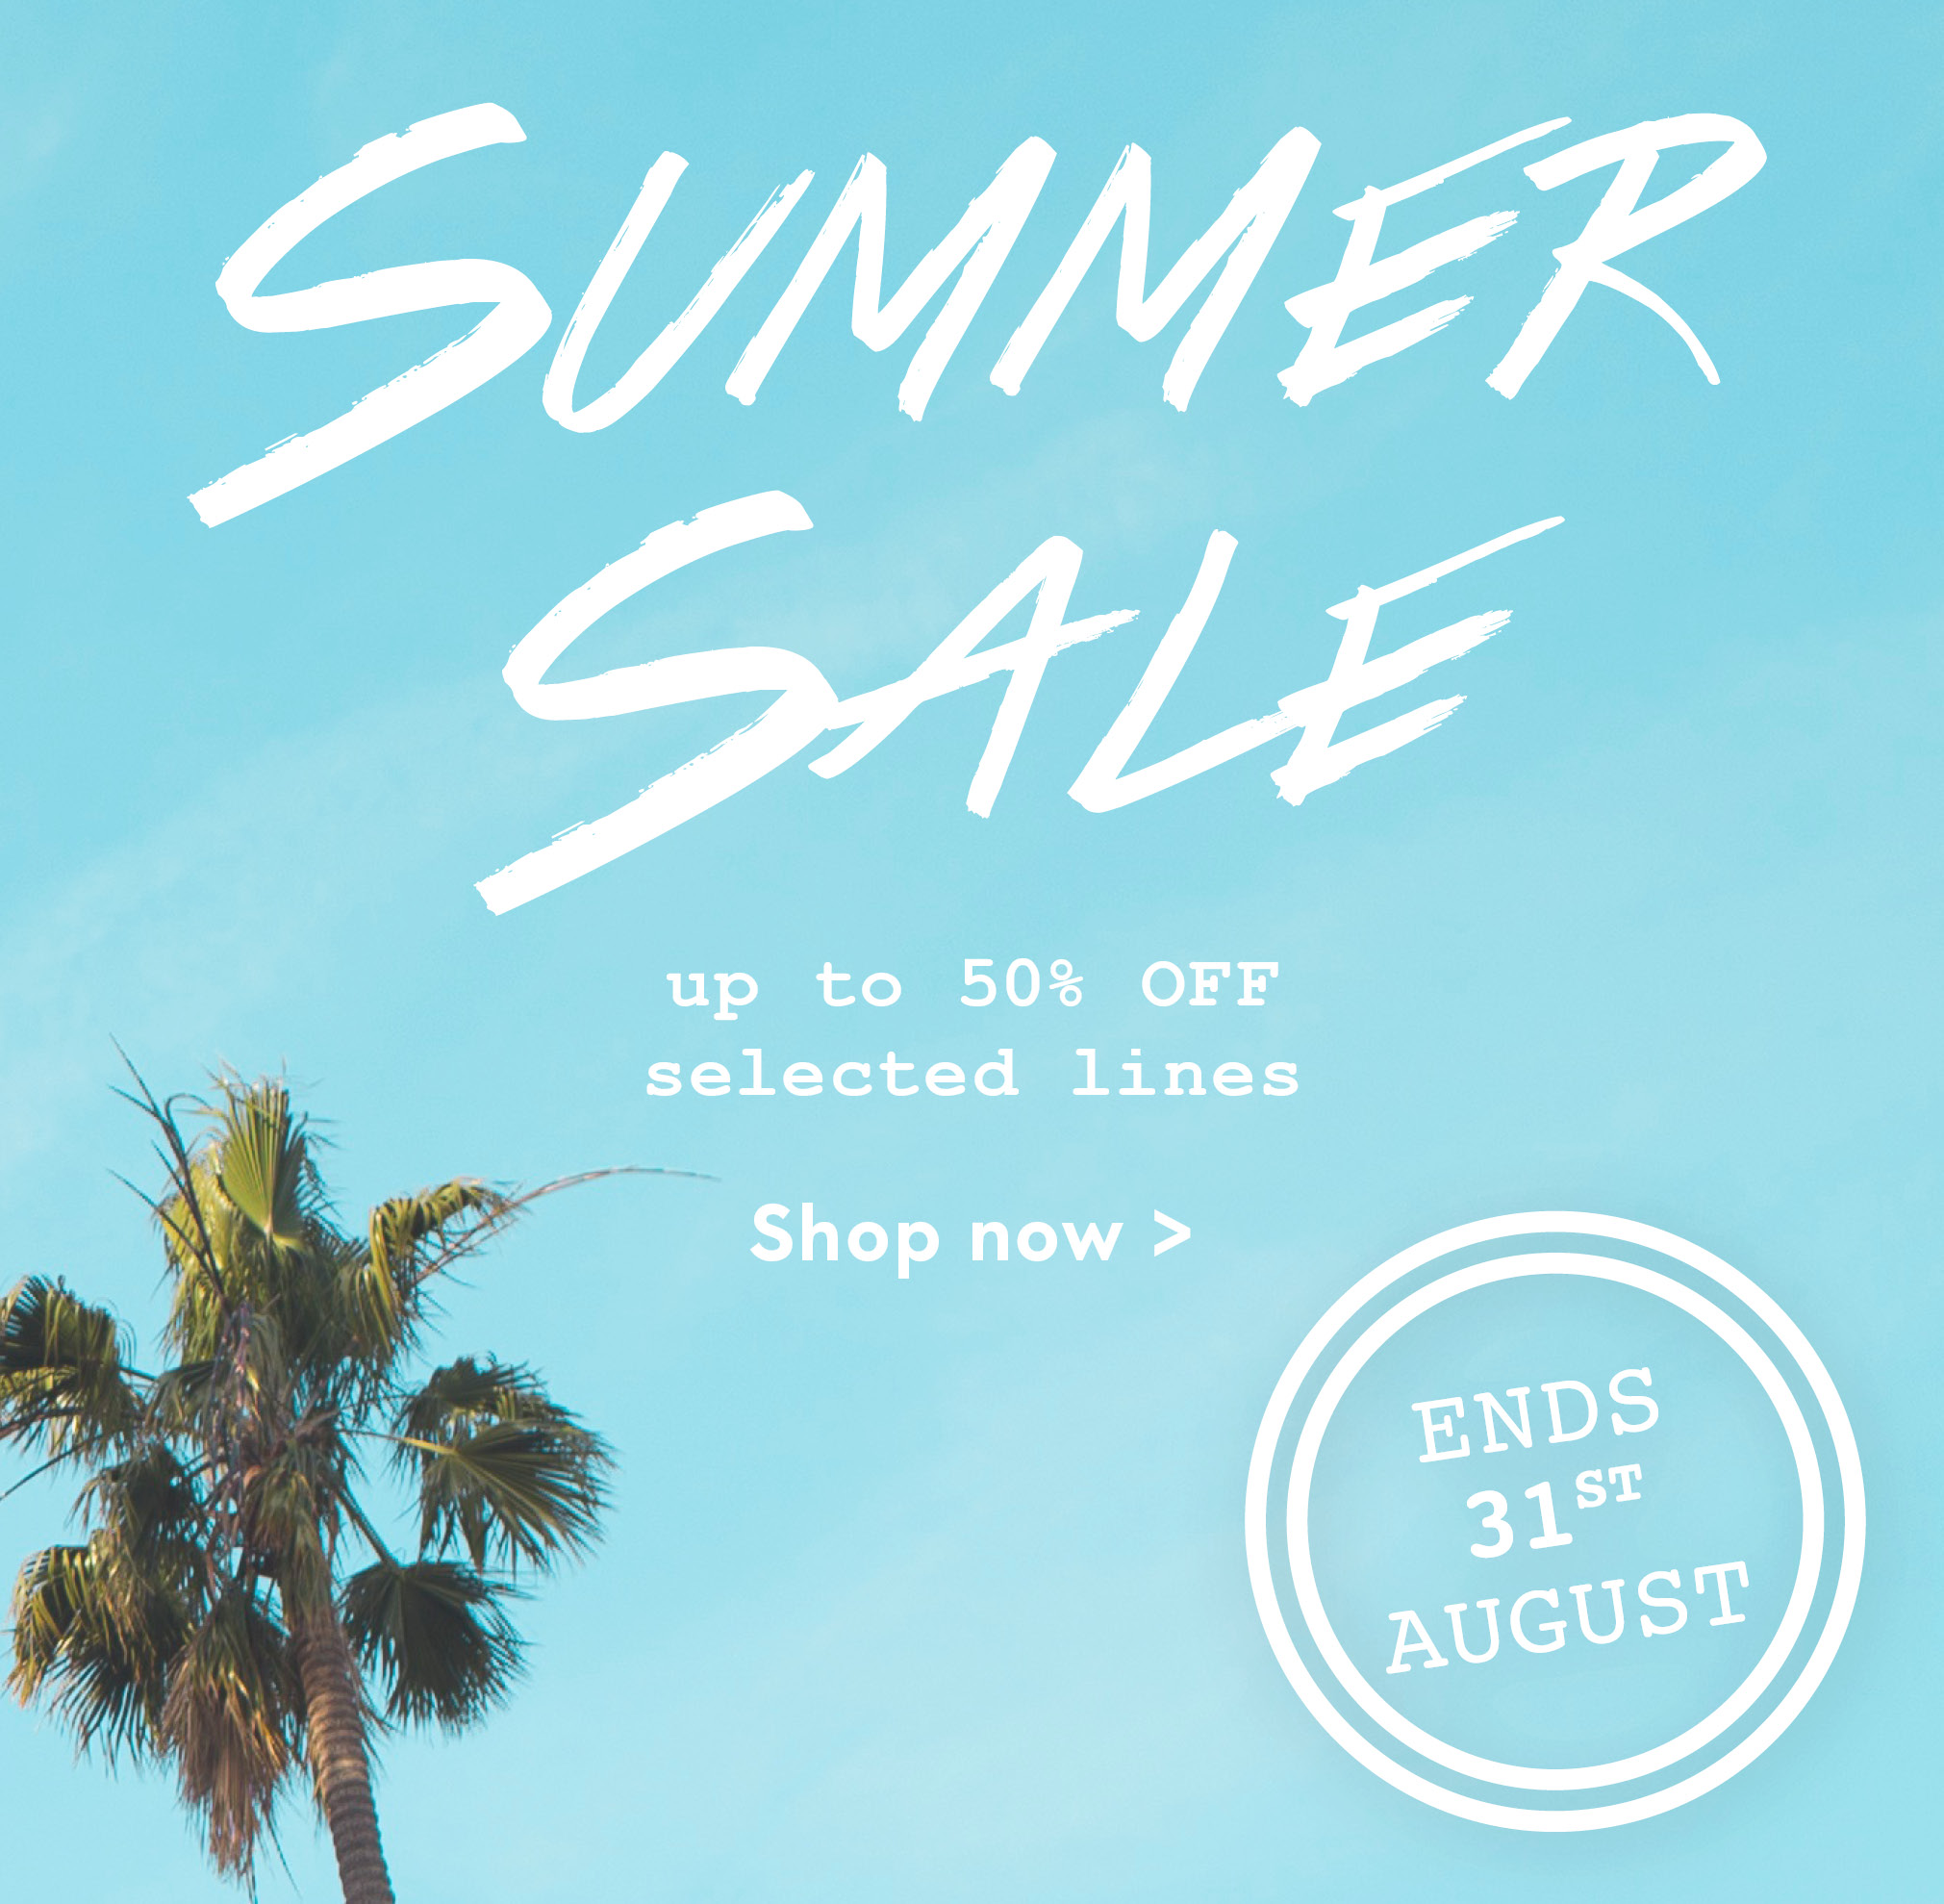 Summer Sale ends 31st August